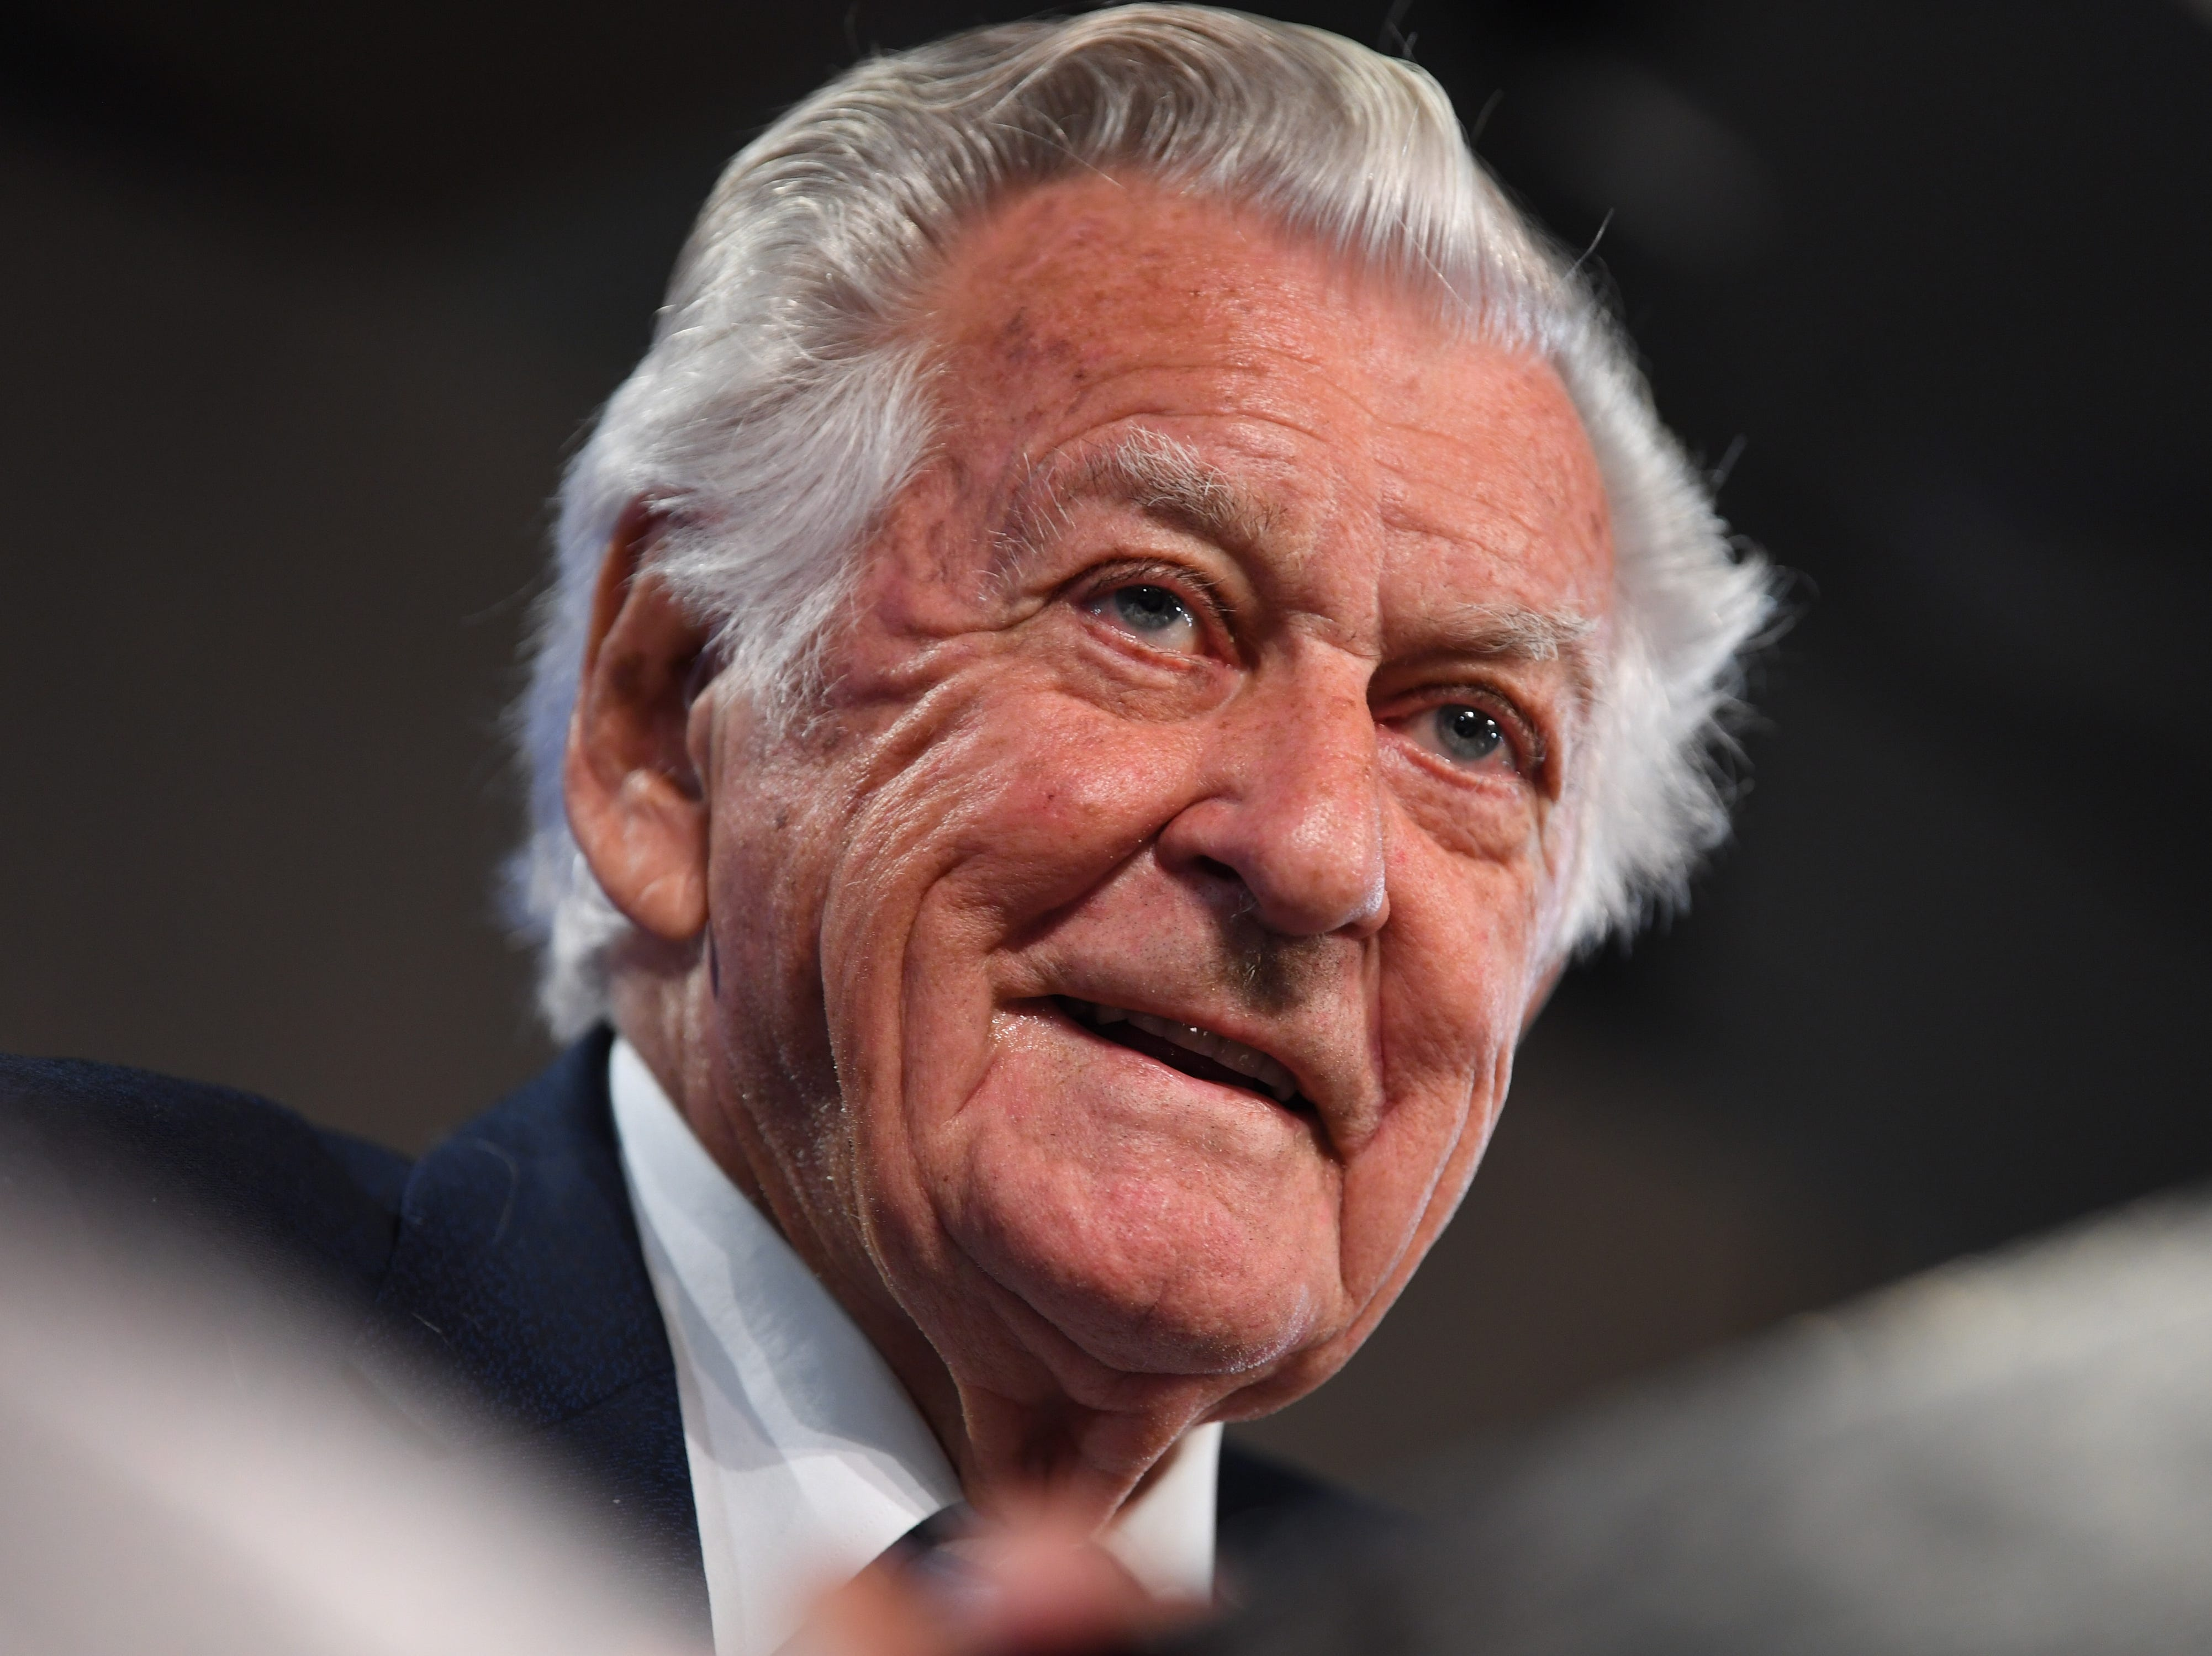 Former Australian Prime Minister Bob Hawke speaks at the National Press Club during the book launch of Gareth Evans' memoir 'Incorrigible Optimist' in Canberra, Australian Capital Territory, Australia on Oct. 4, 2017 Former prime minister and Australian Labor Party leader Bob Hawke has died on May 16, 2019 at the age of 89.